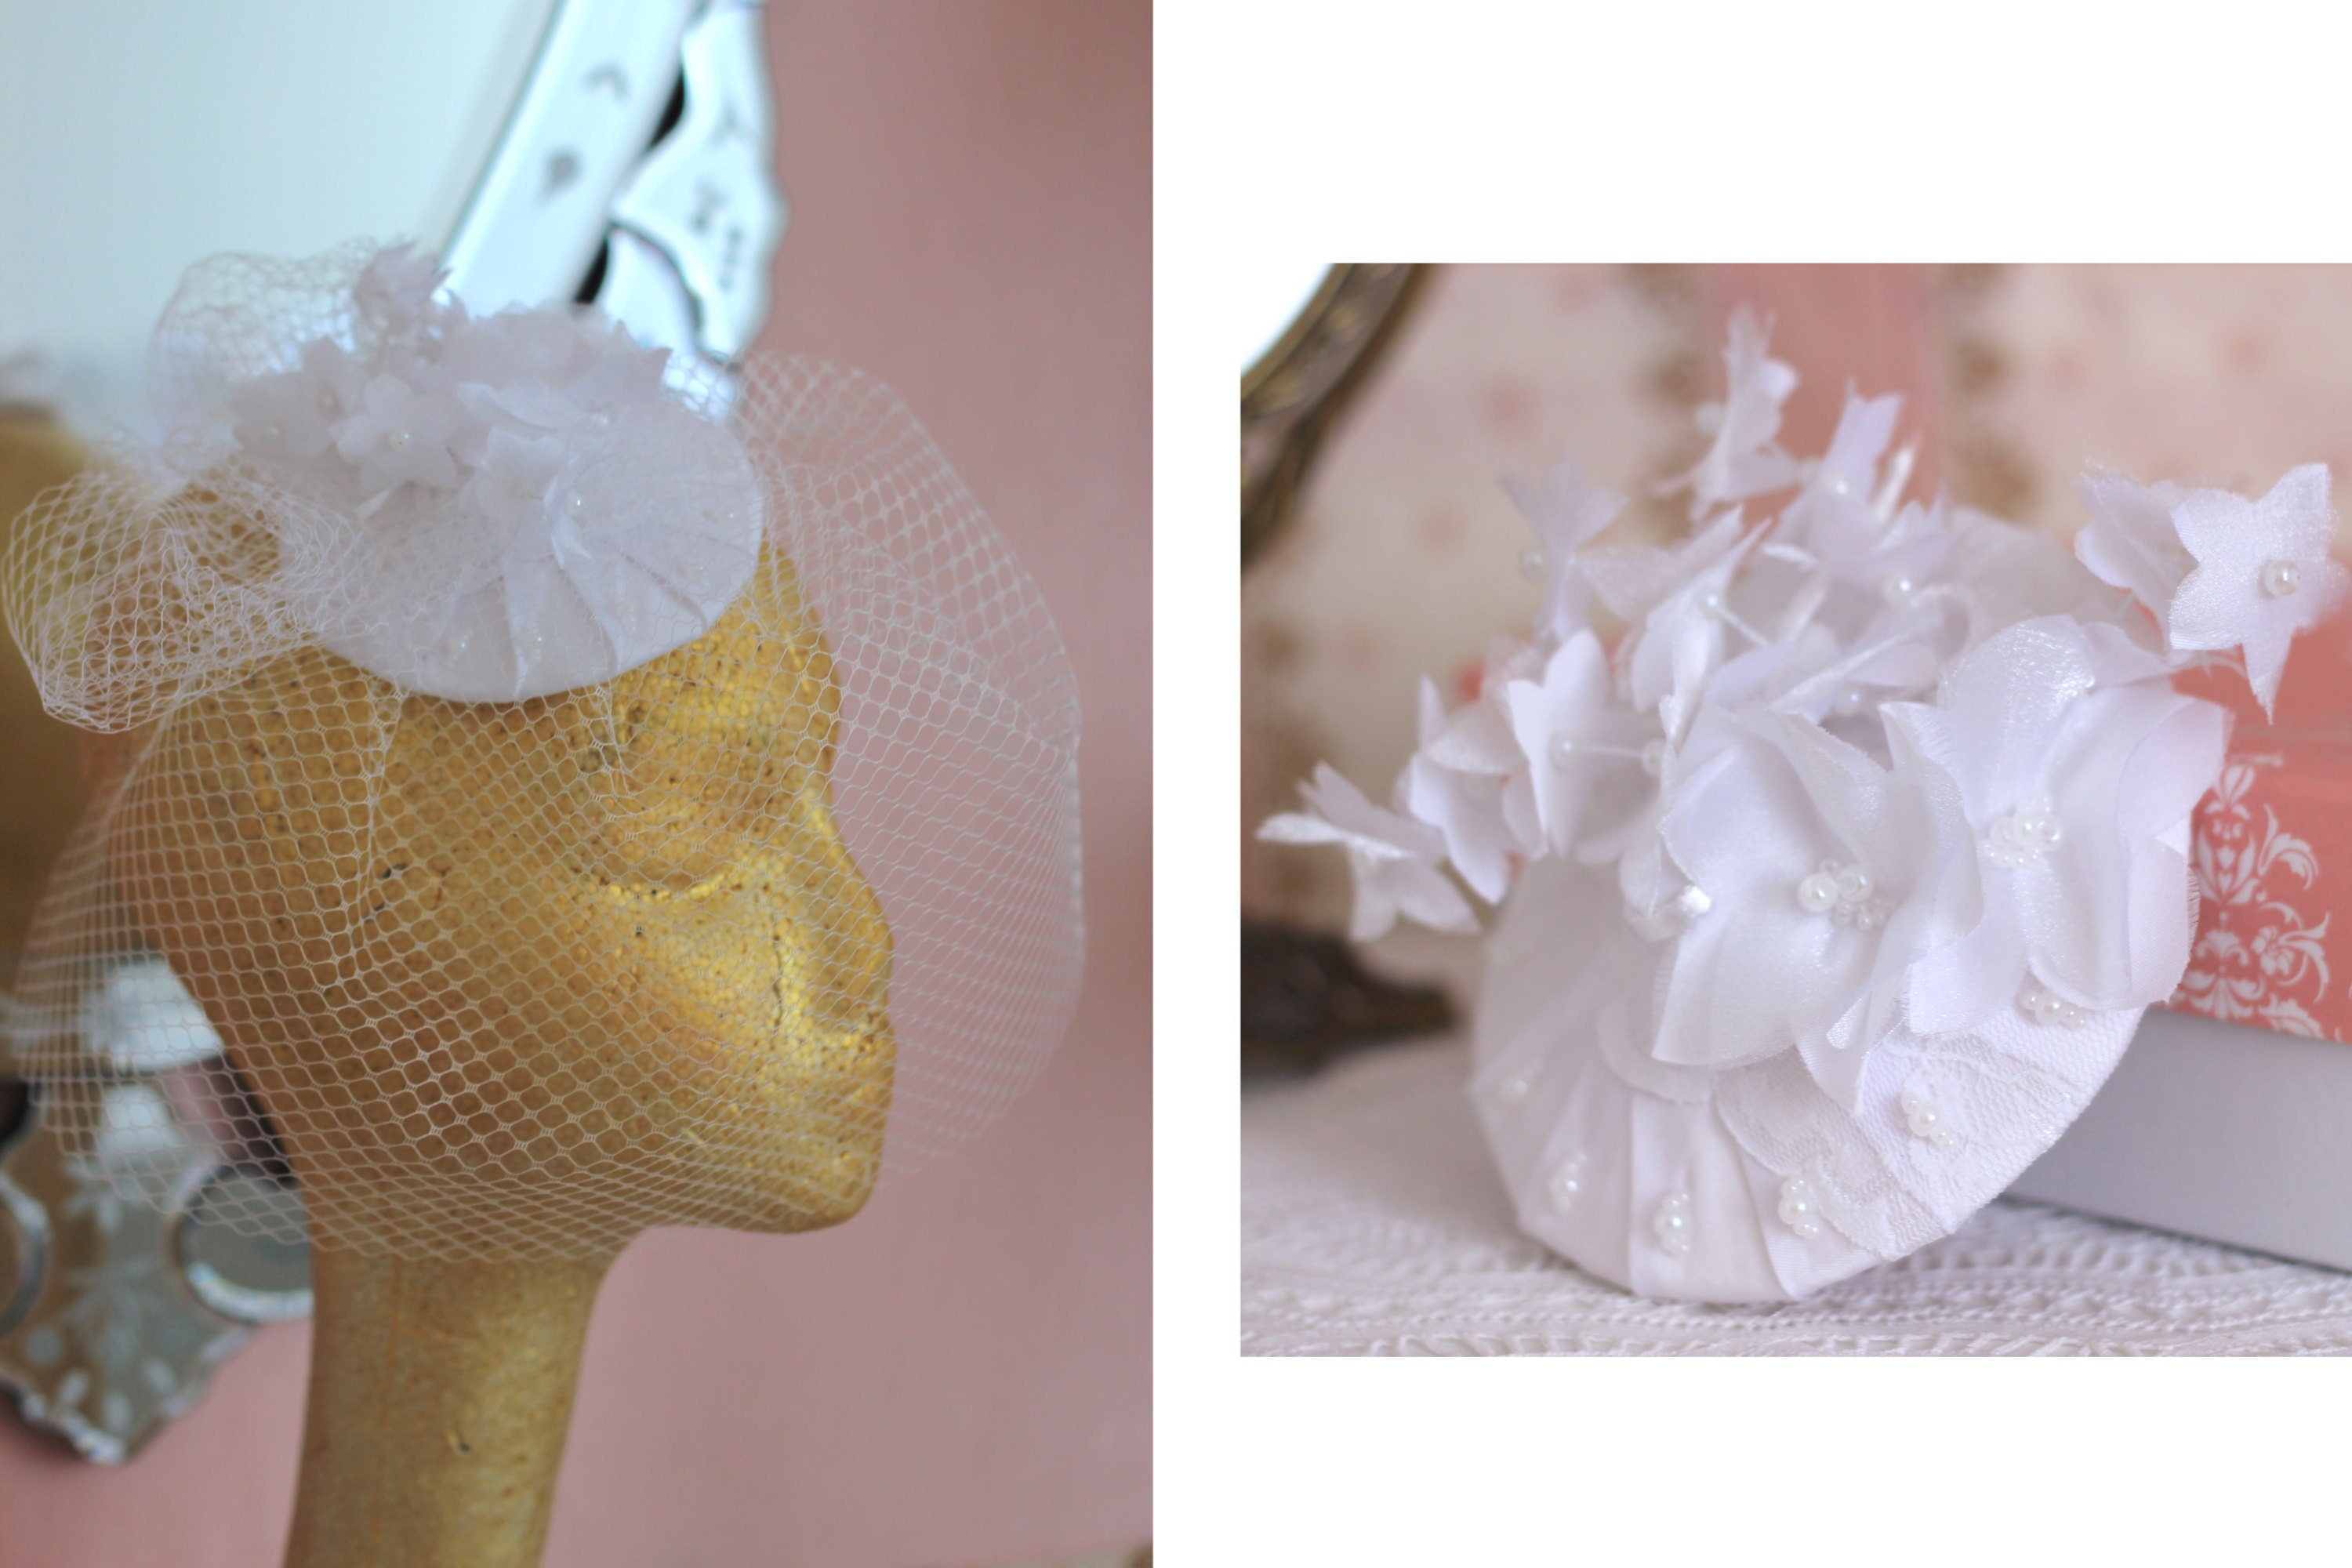 Versatile fascinator mini hat for brides. It can be can uses with or without birdcage veil, by Elizabete Munzlinger